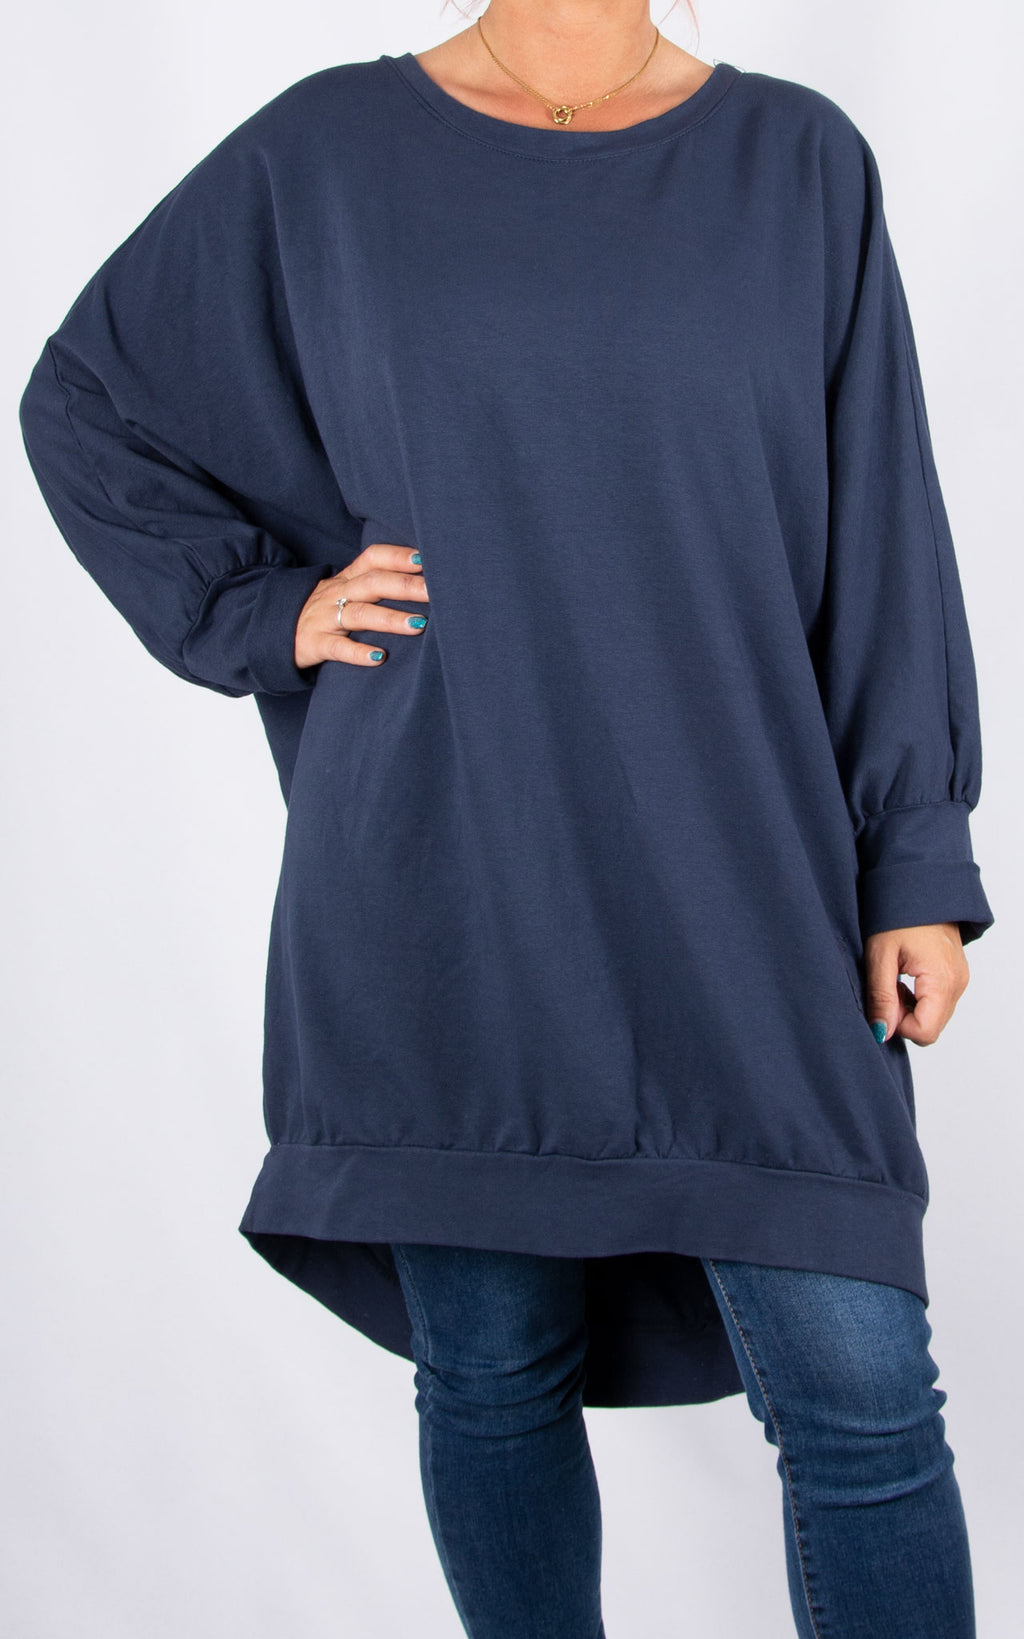 Zippy|Batwing Back Zip |Navy